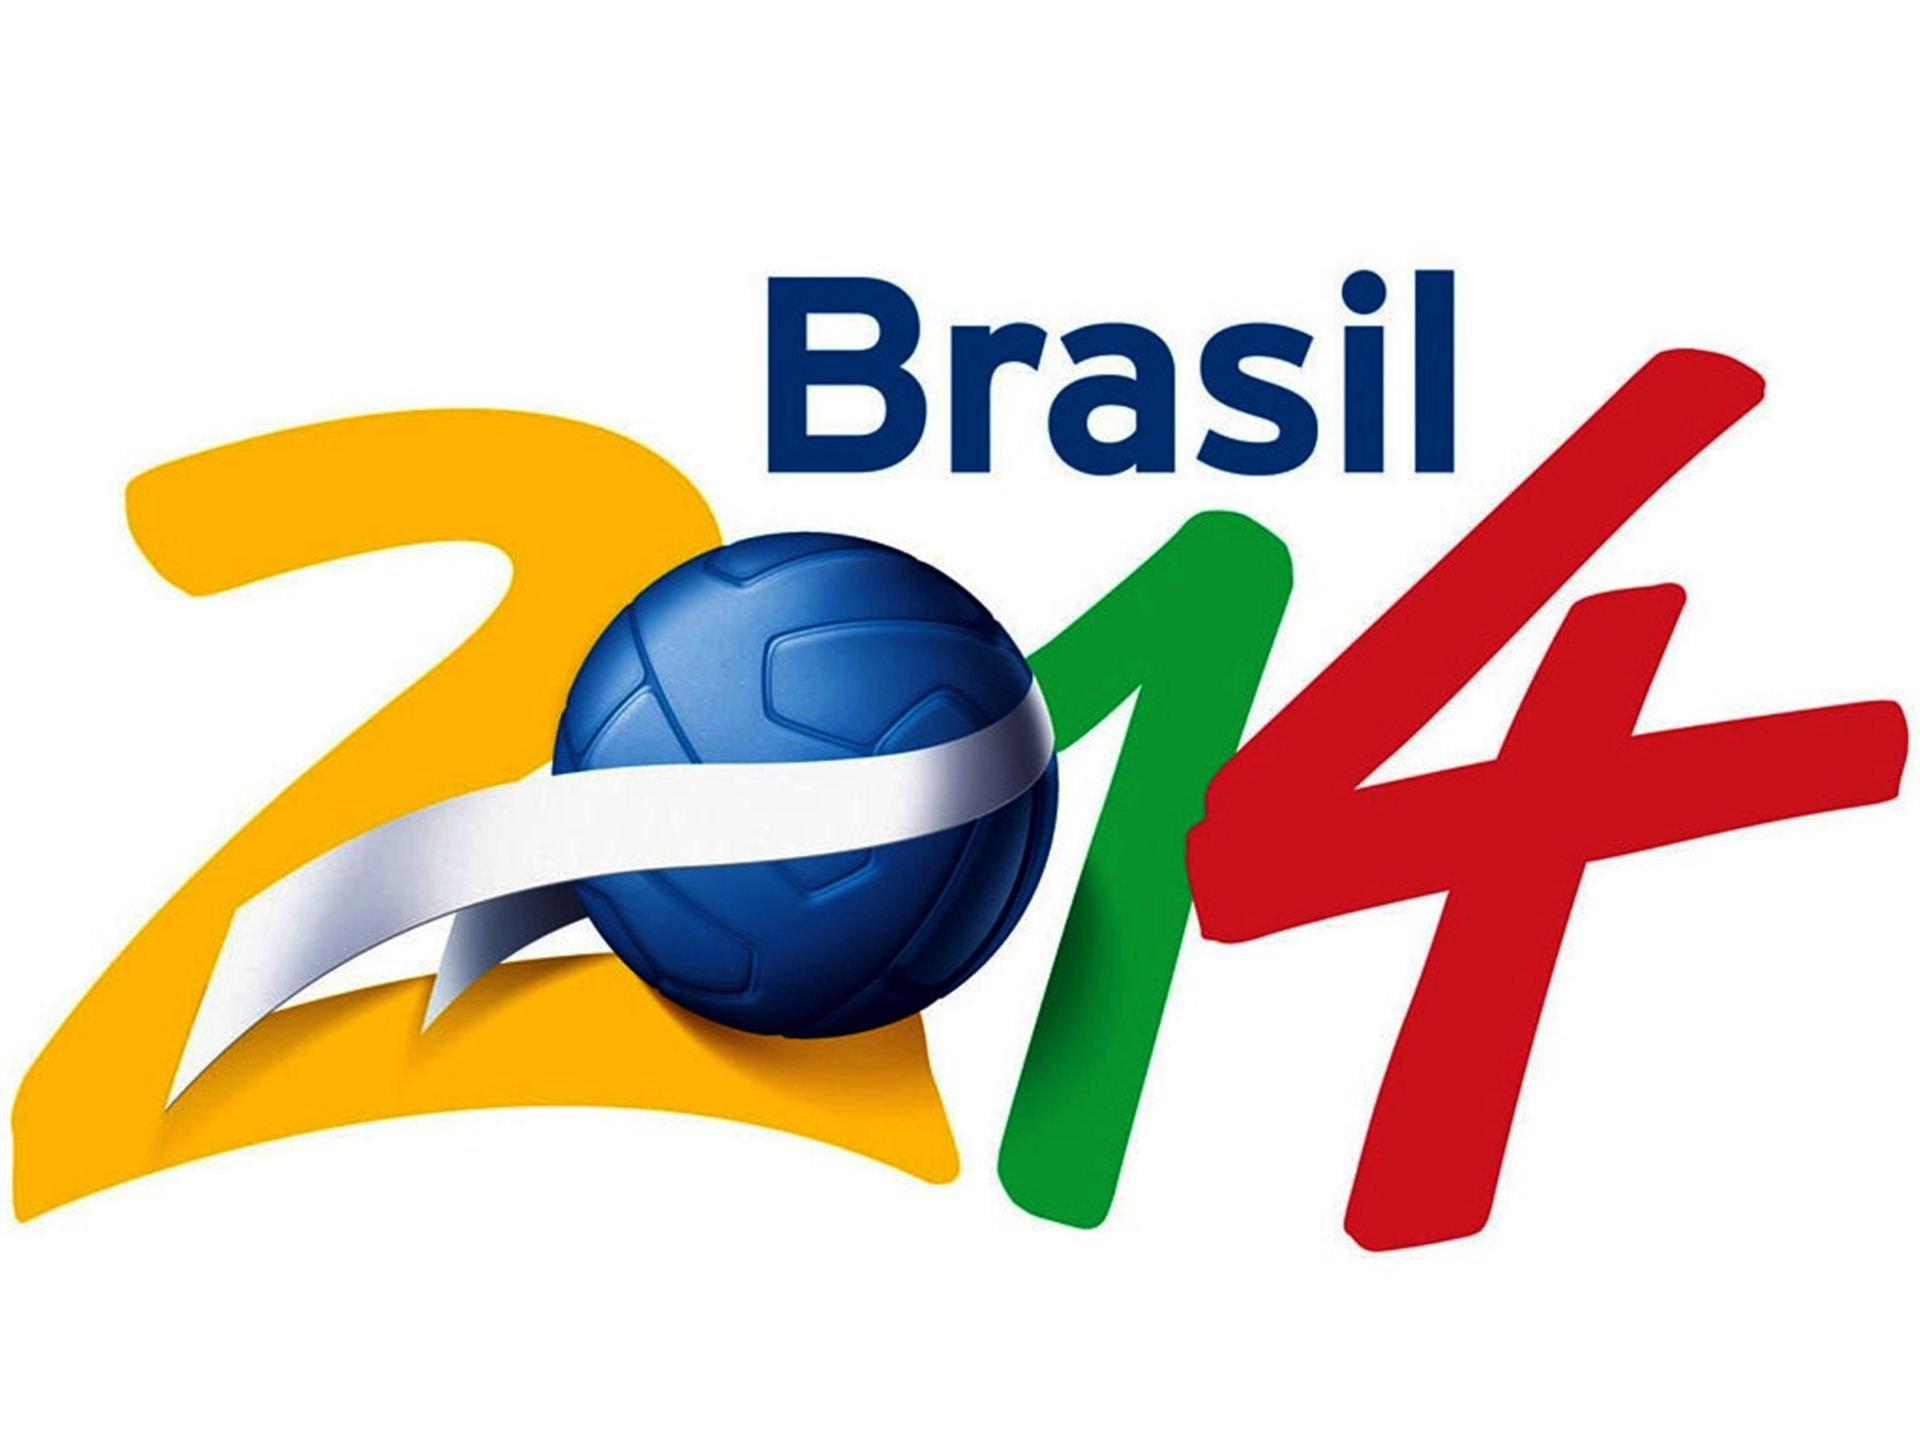 The tale of the 2014 FIFA World Cup